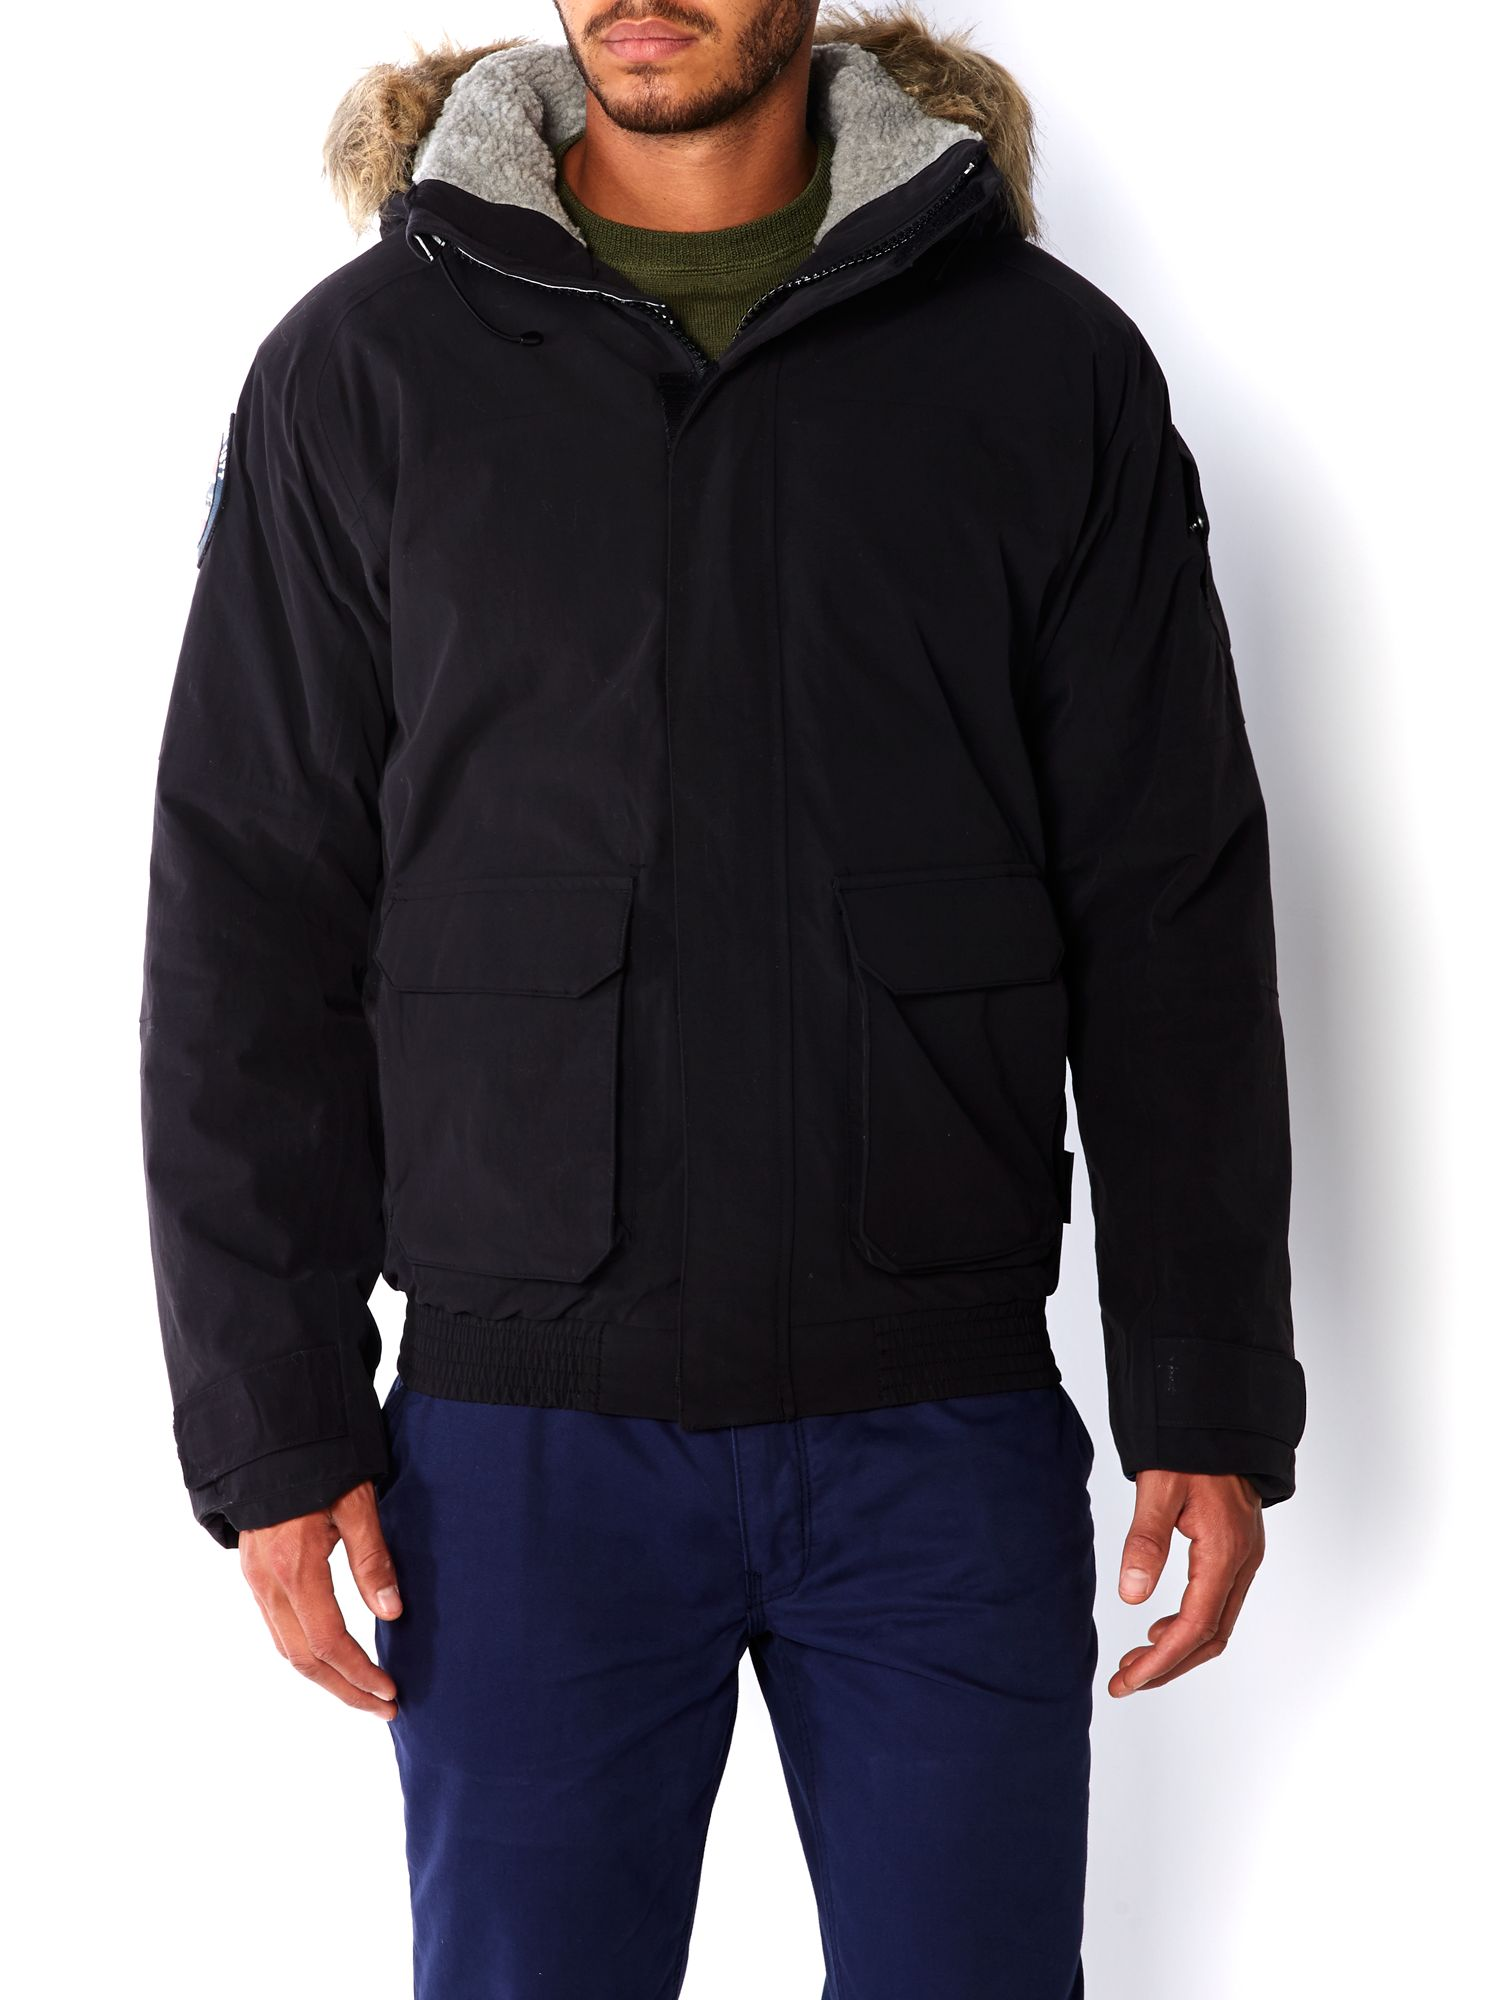 Longyear flow jacket